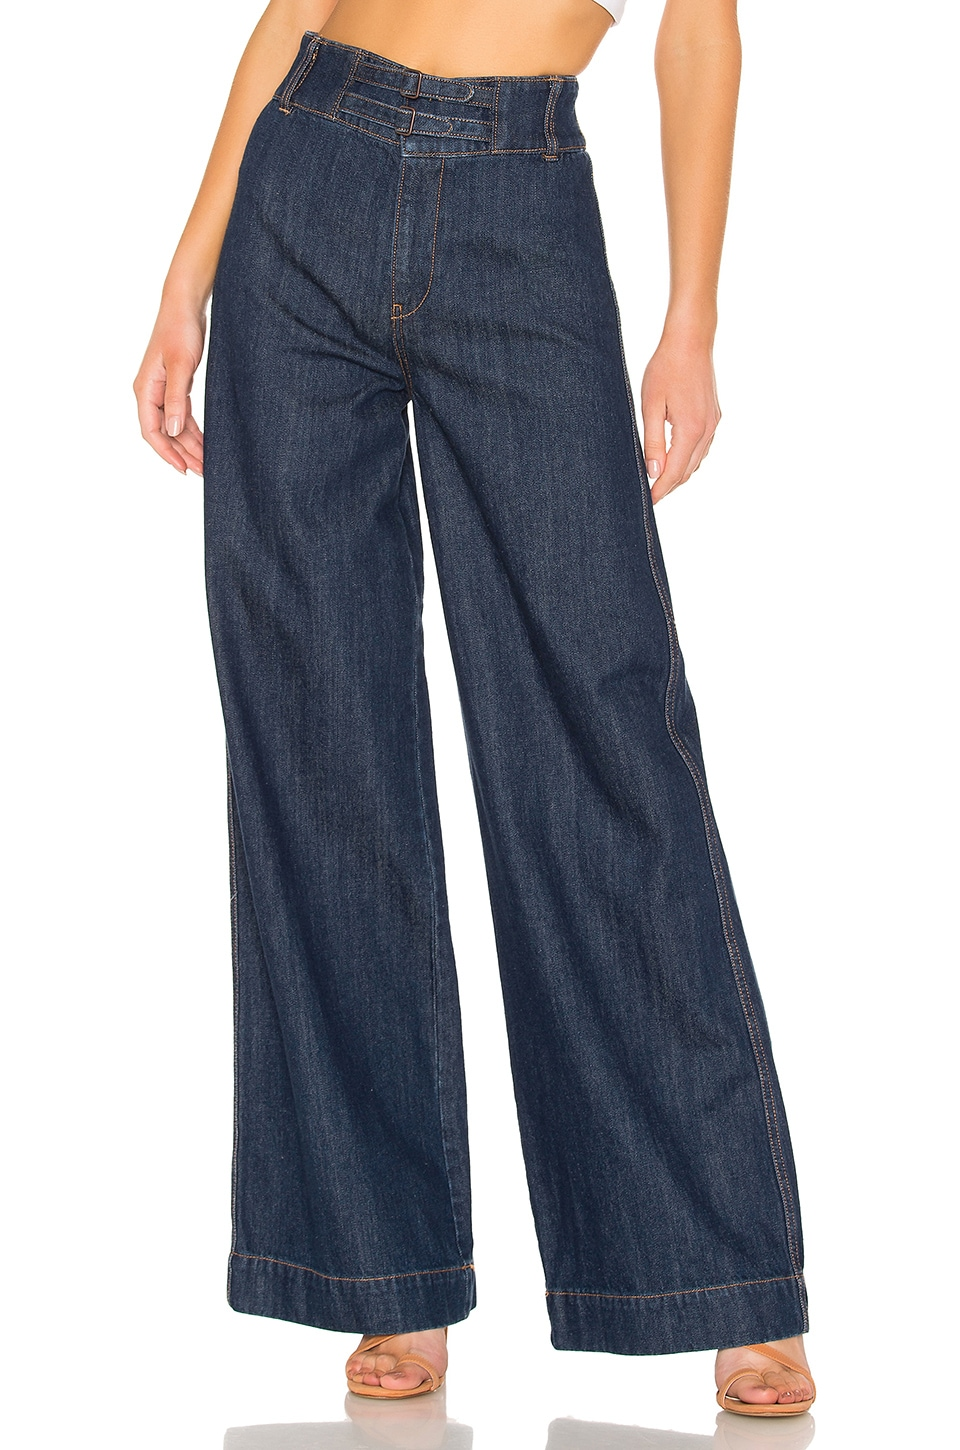 Free People Big Bell Jean in Dark Denim